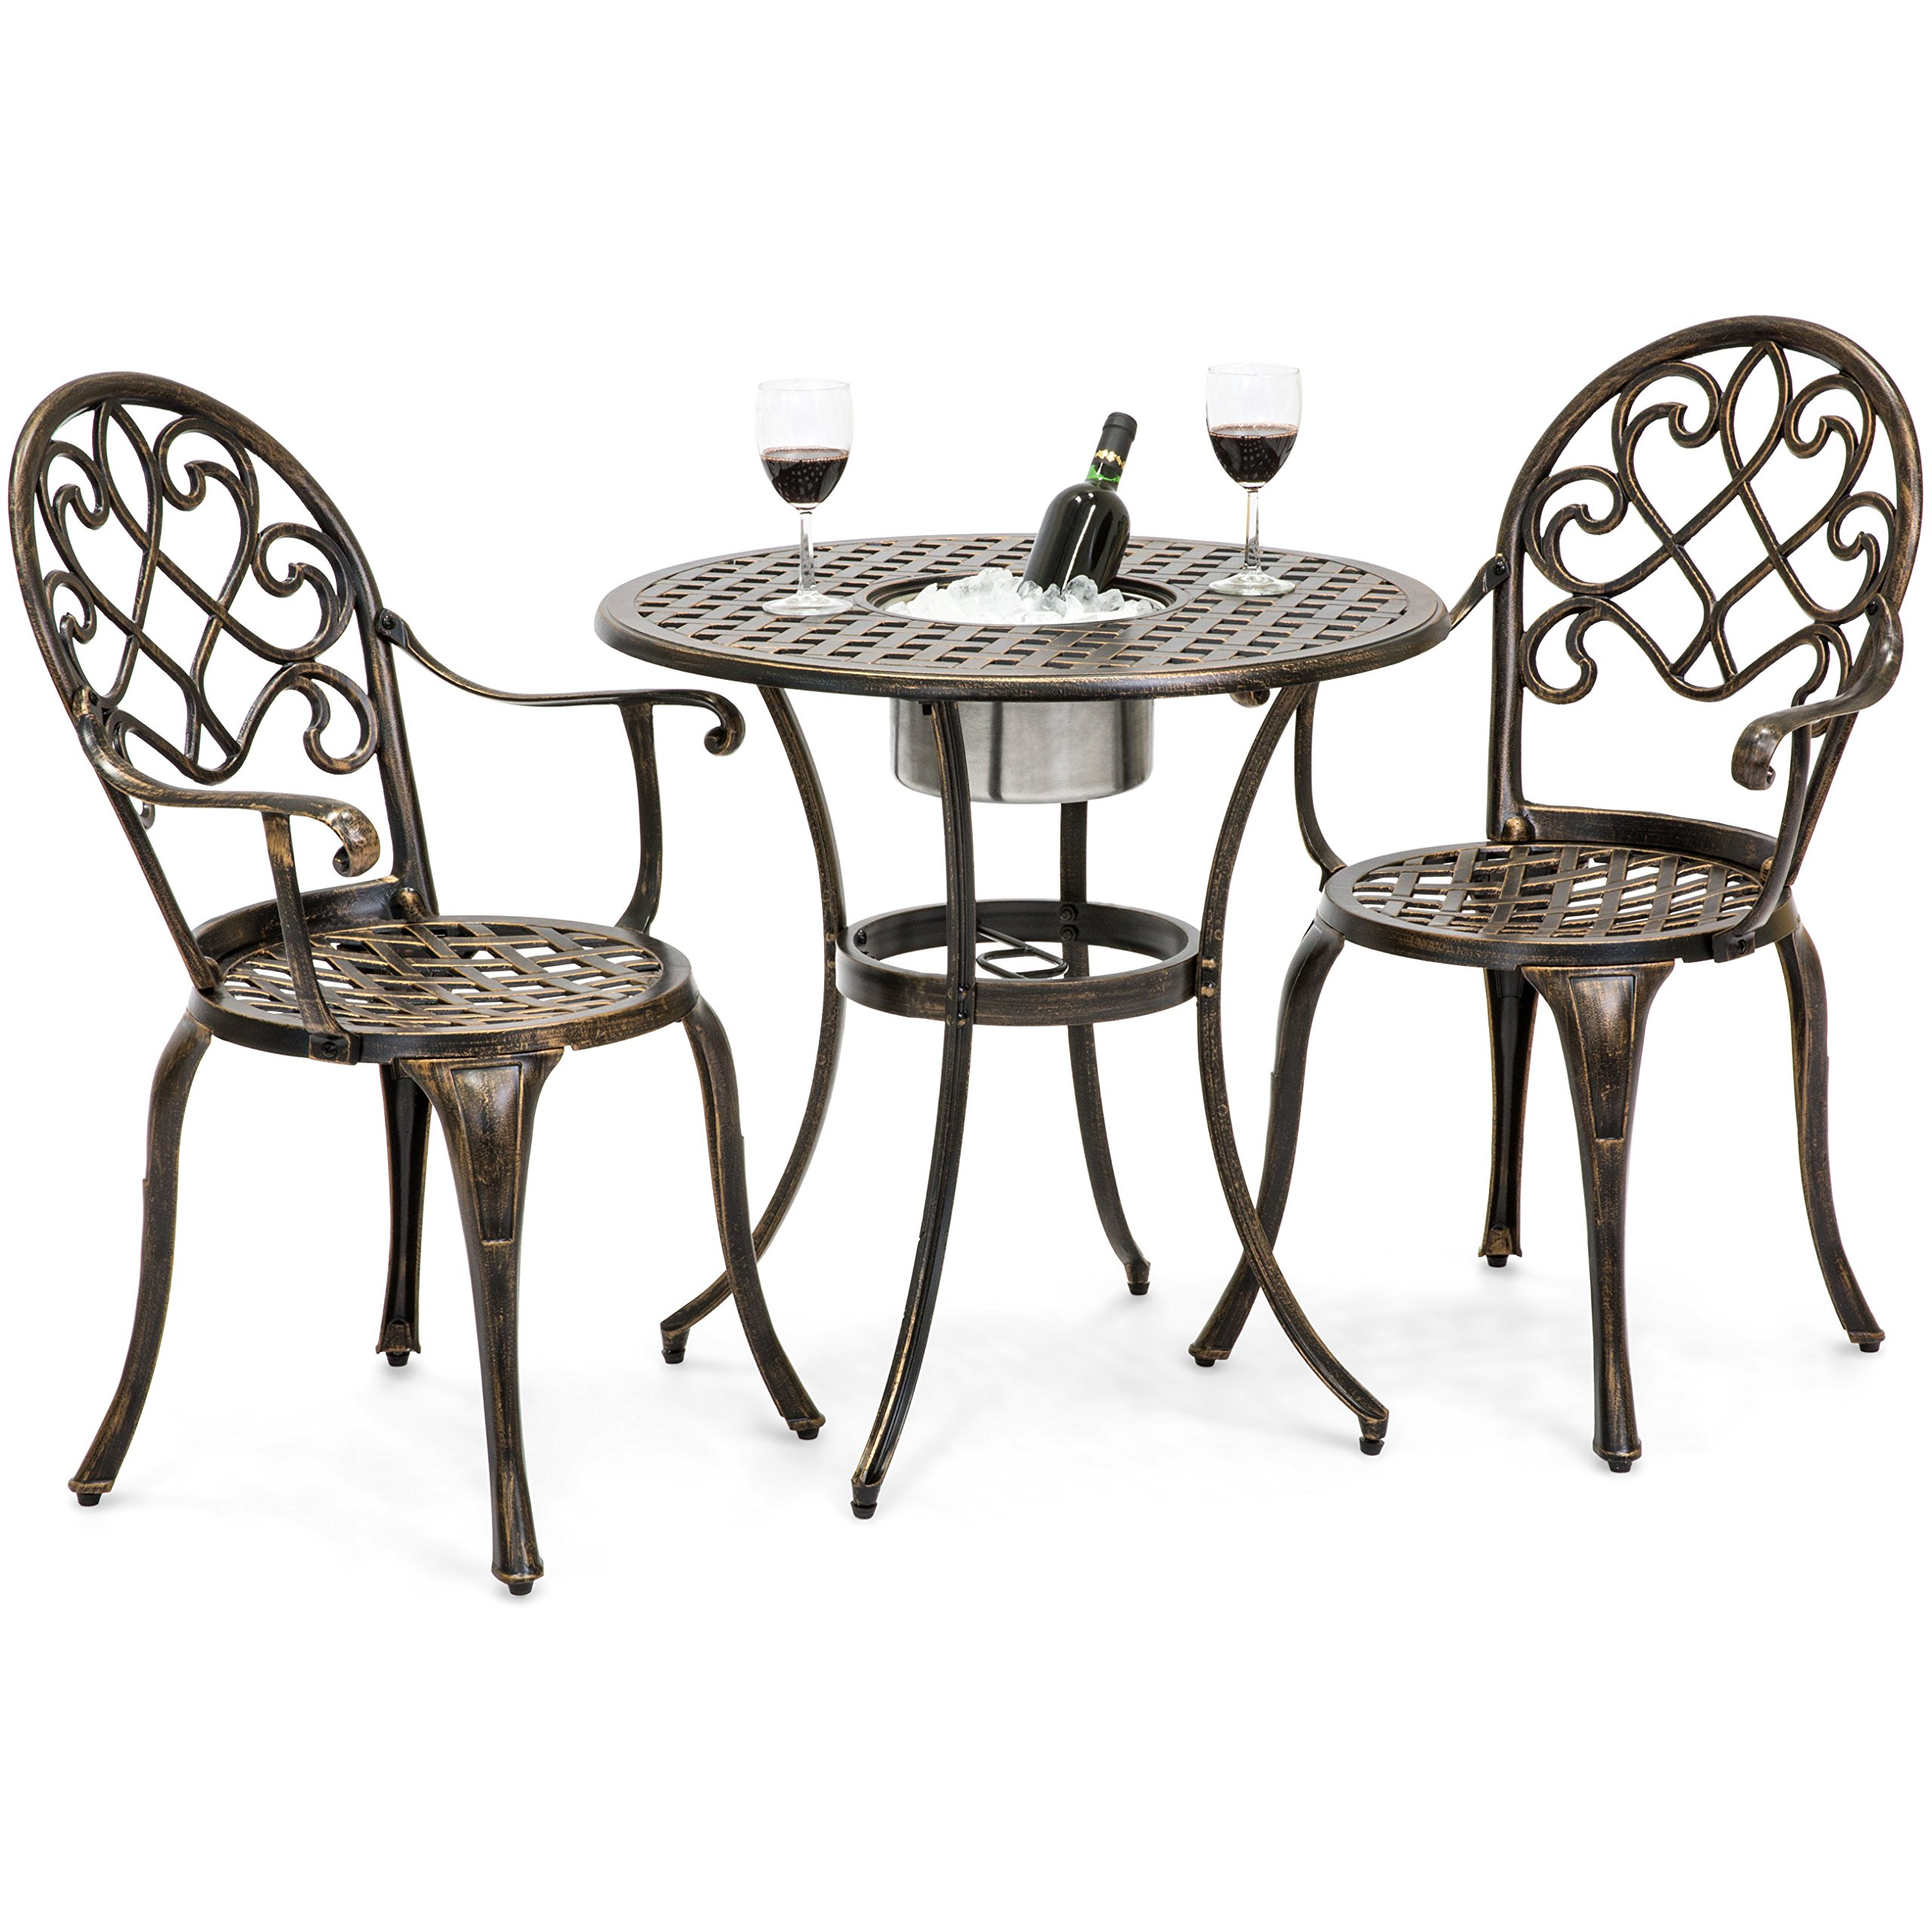 Best Choice Products Cast Aluminum Patio Bistro Table Set w/Attached Ice Bucket, Chairs (Copper)